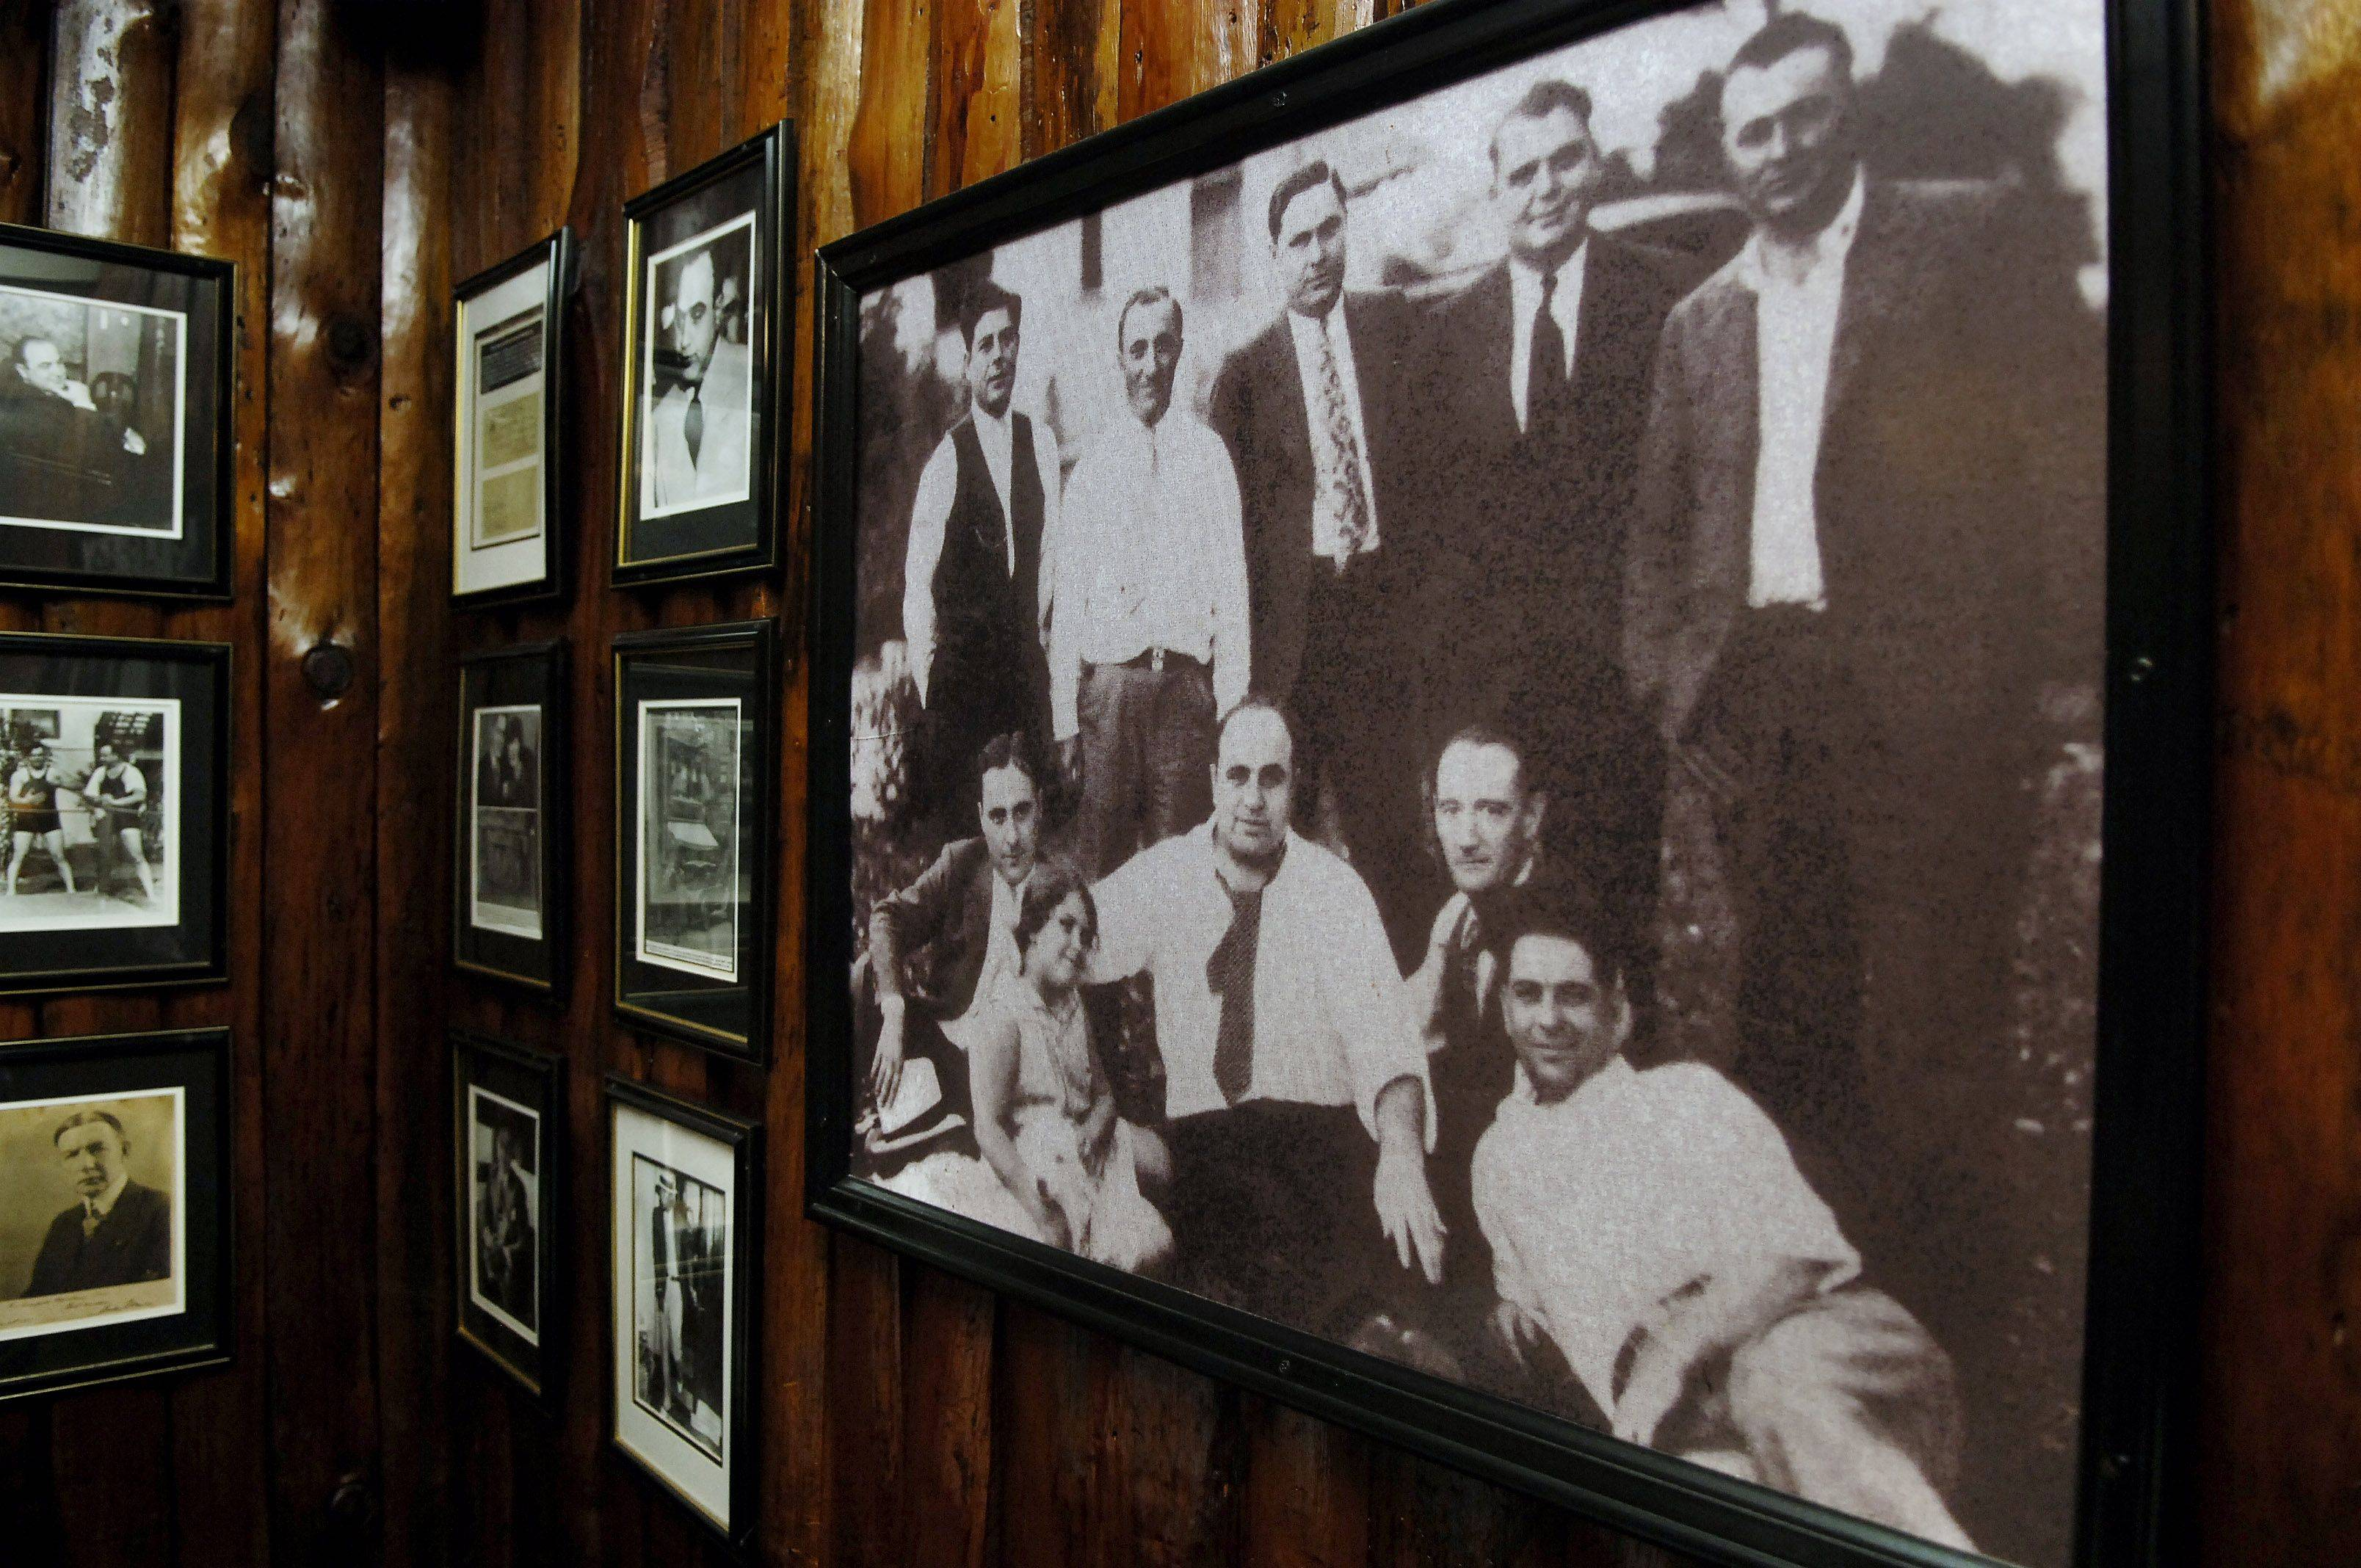 LAURA STOECKER/lstoecker@dailyherald.comOld photos and newspaper articles decorate the walls at Al Capone's Hideaway.